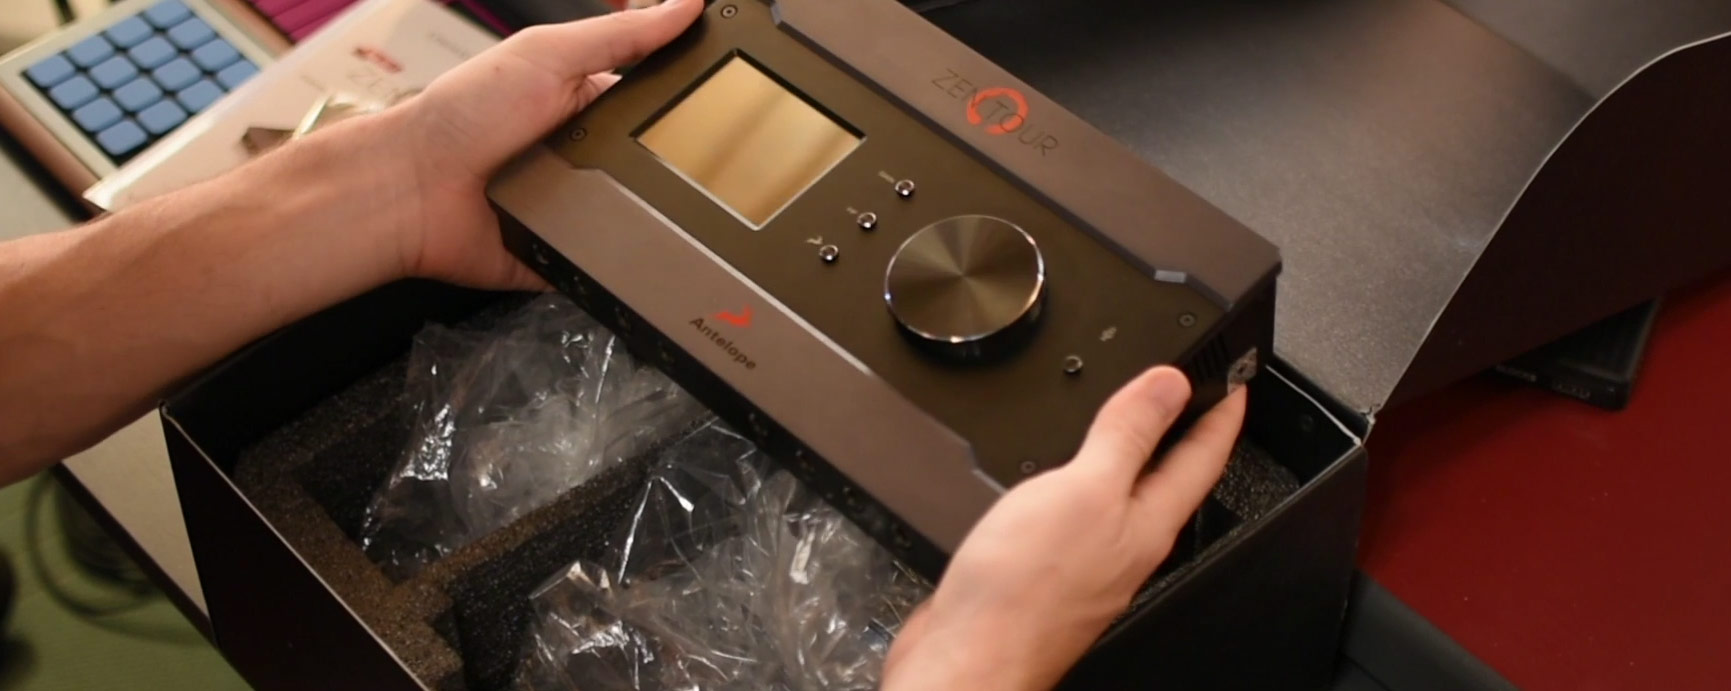 Zen tour: Unboxing et présentation de l'interface audio d'Antelope audio